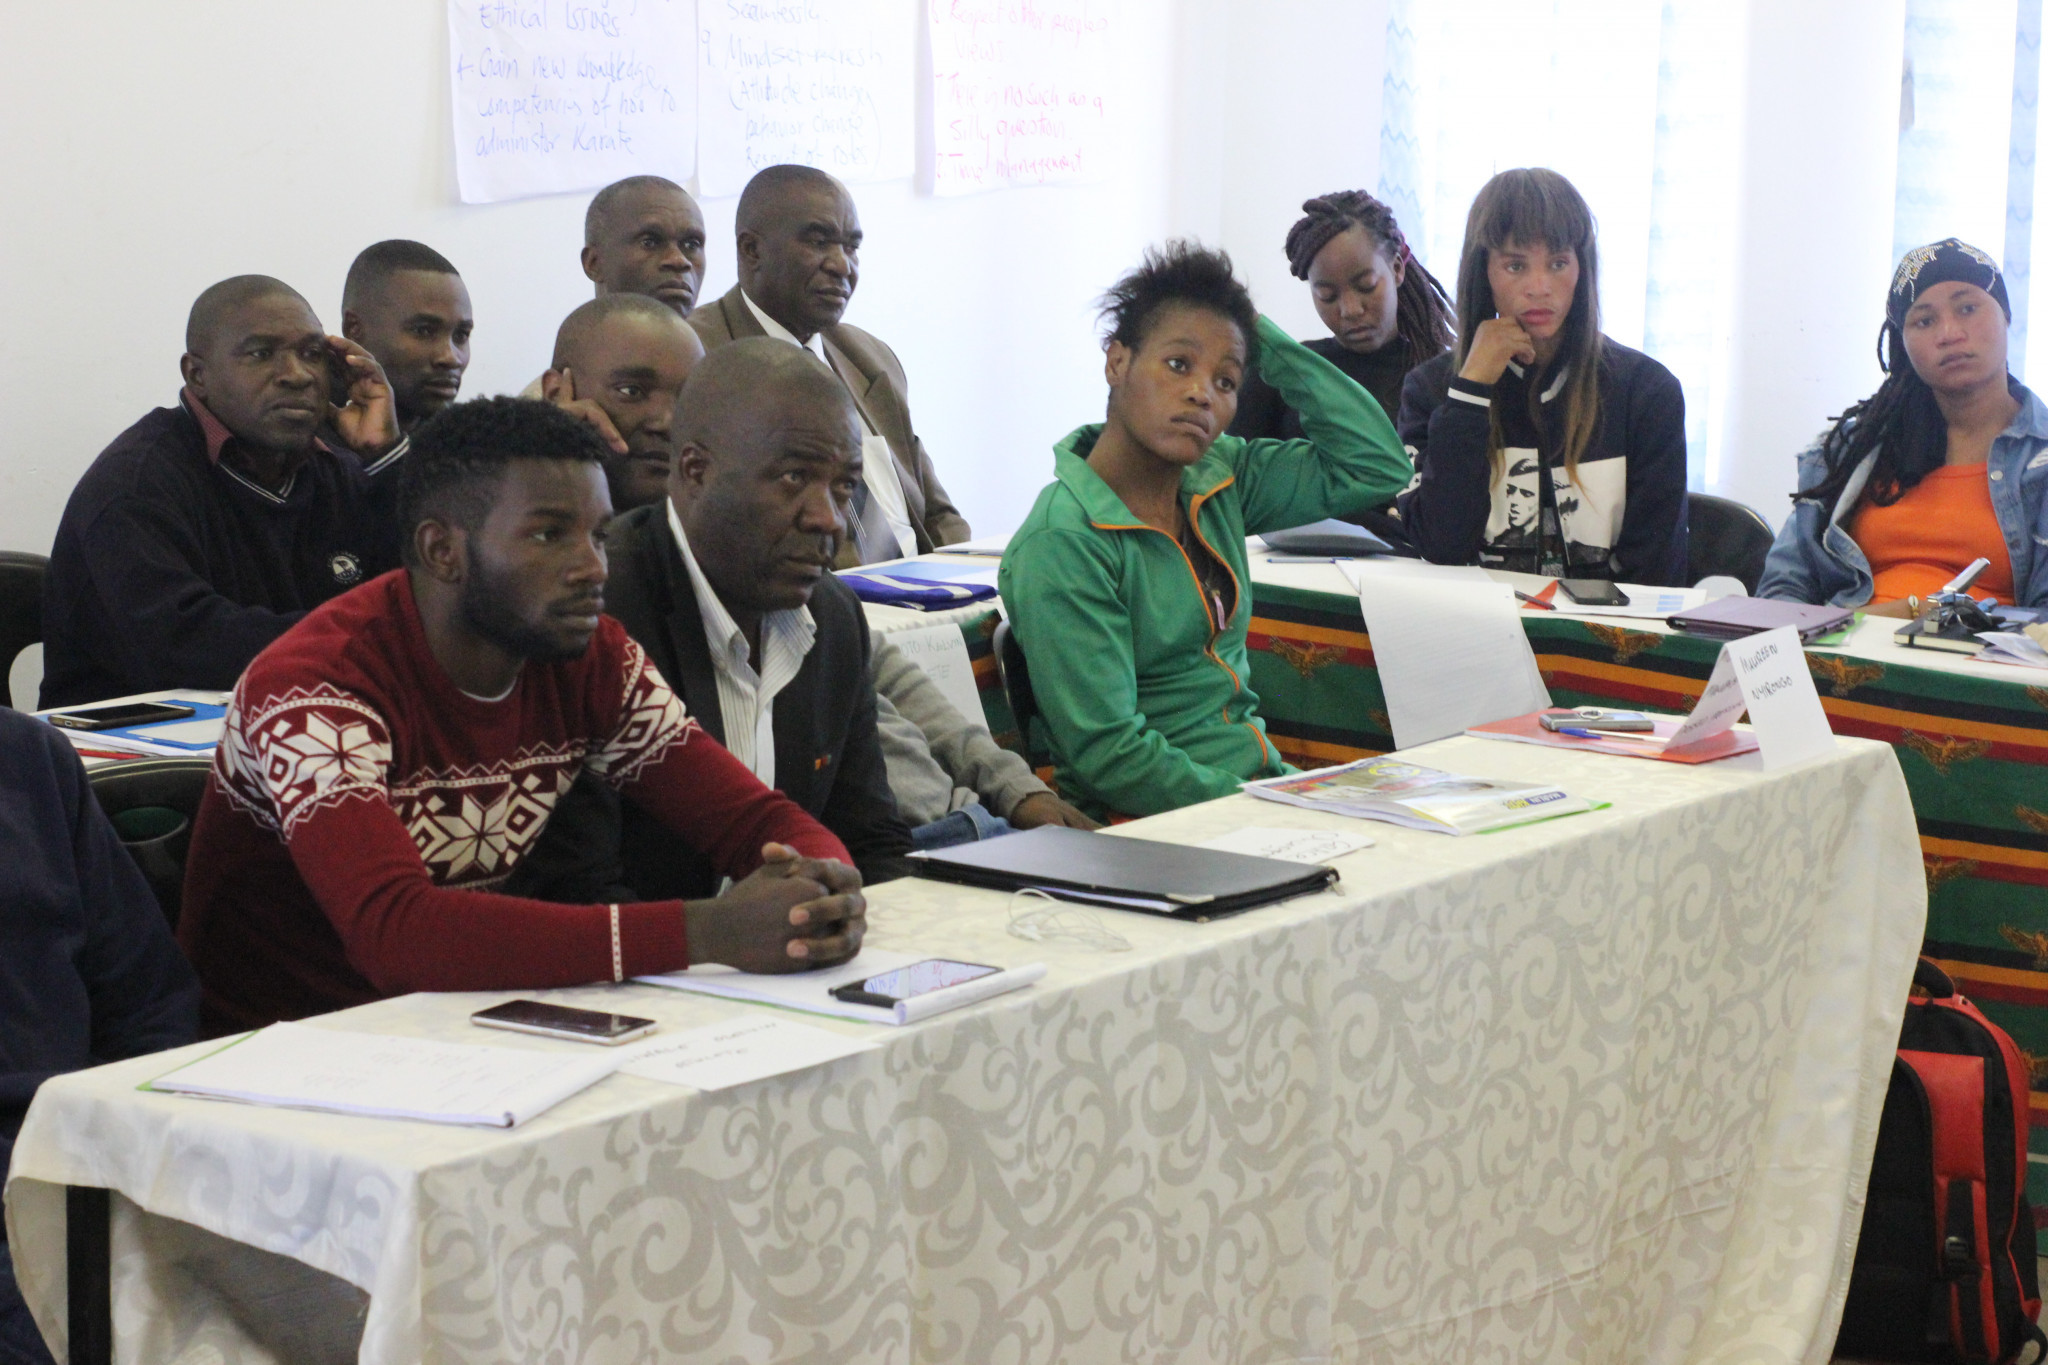 National Olympic Committee of Zambia hosts martial arts workshop